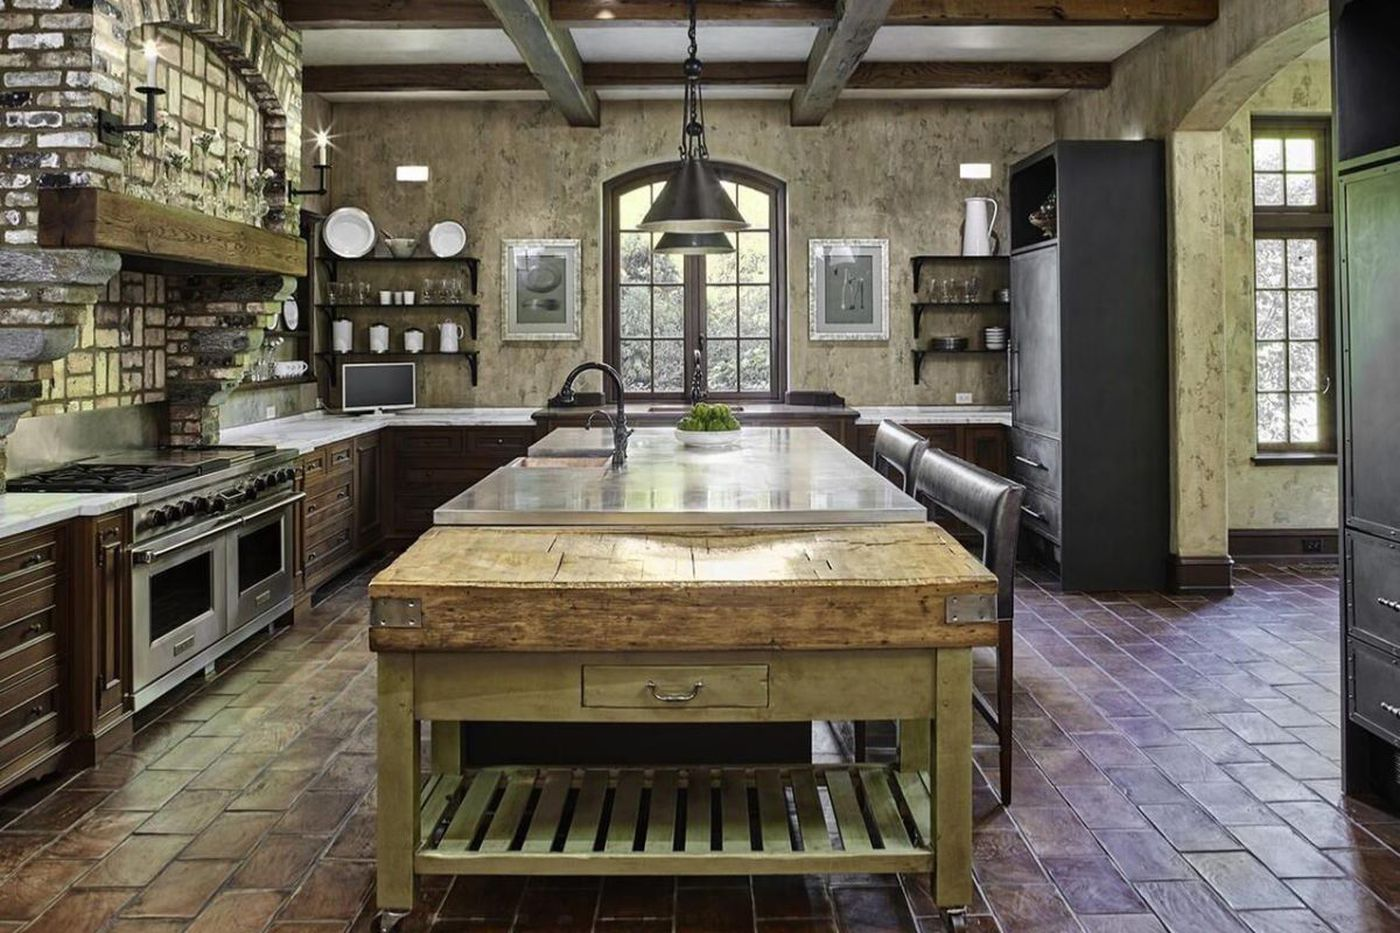 Gourmet kitchens of Montgomery County: A place to channel your inner chef